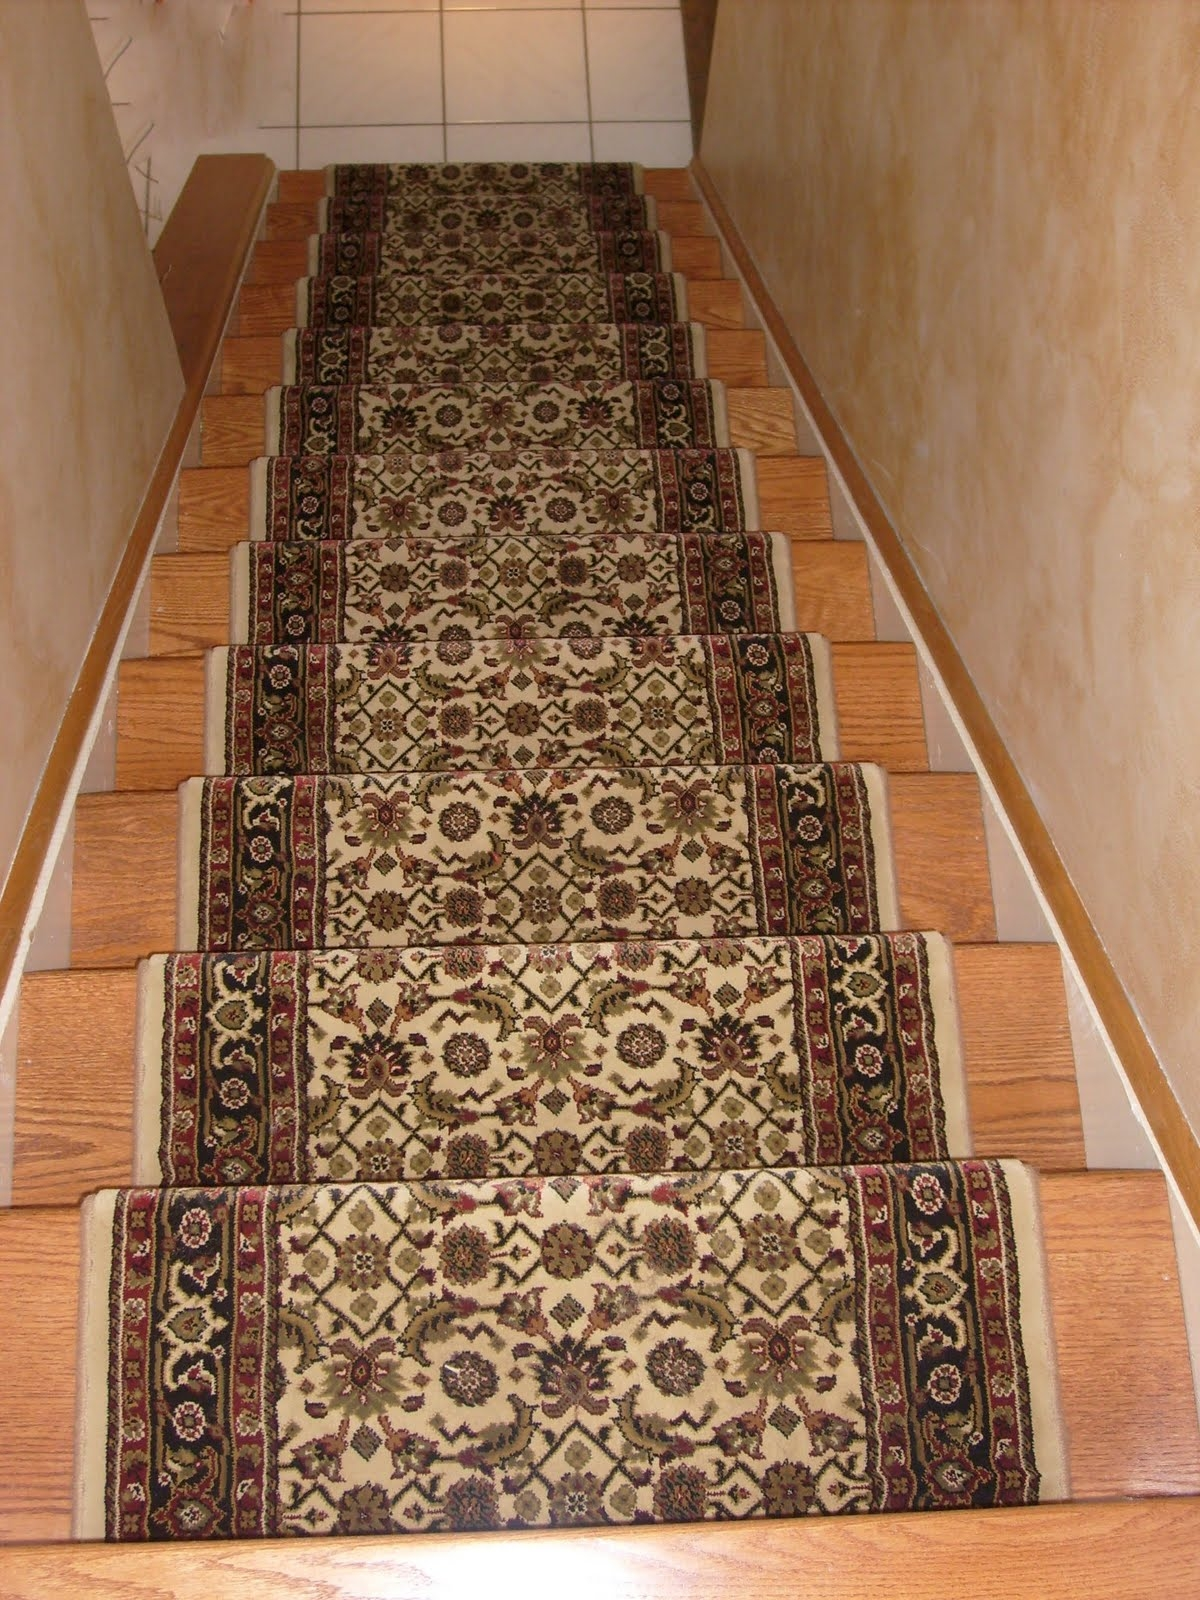 Designer Oriental Floral Carpet Runner For Stairs On Wooden Foot Throughout Stair Tread Carpet Runners (View 14 of 15)